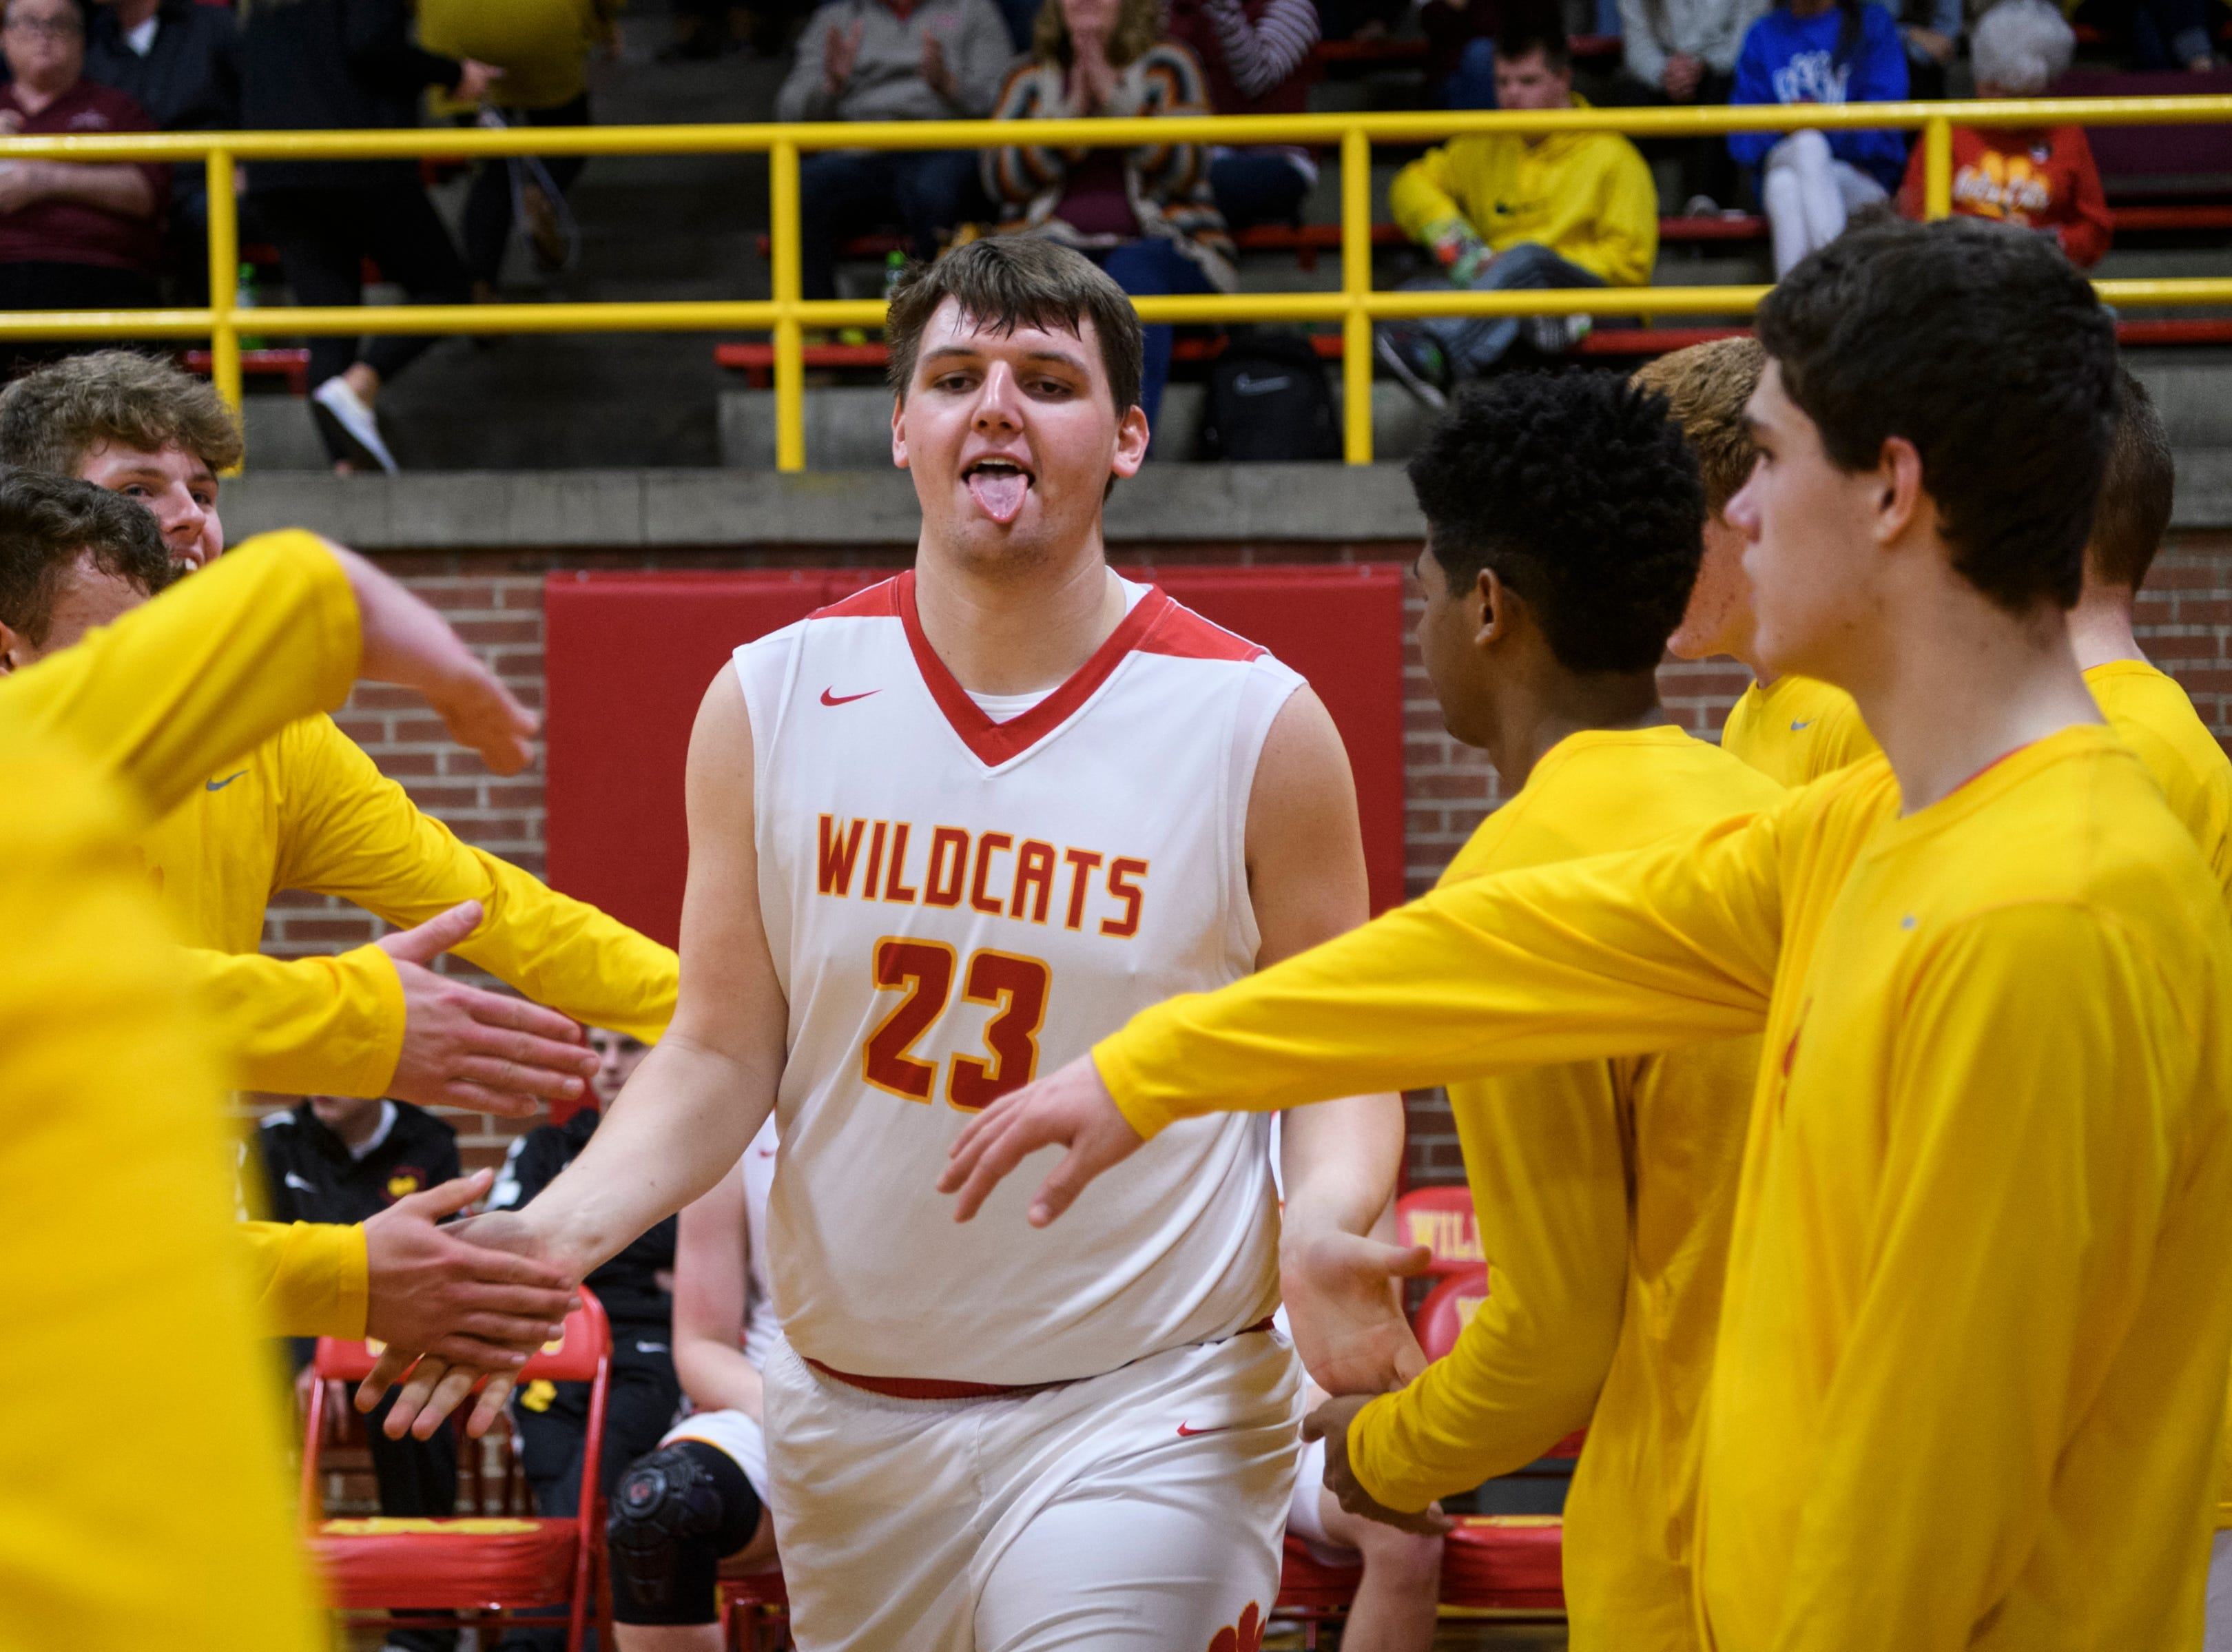 Mater Dei's Logan Carter (23) is announced on his team's starting line up before taking on the Boonville Pioneers at Mater Dei High School in Evansville, Ind., Saturday, Jan. 5, 2019. The Wildcats defeated the Pioneers, 93-65.